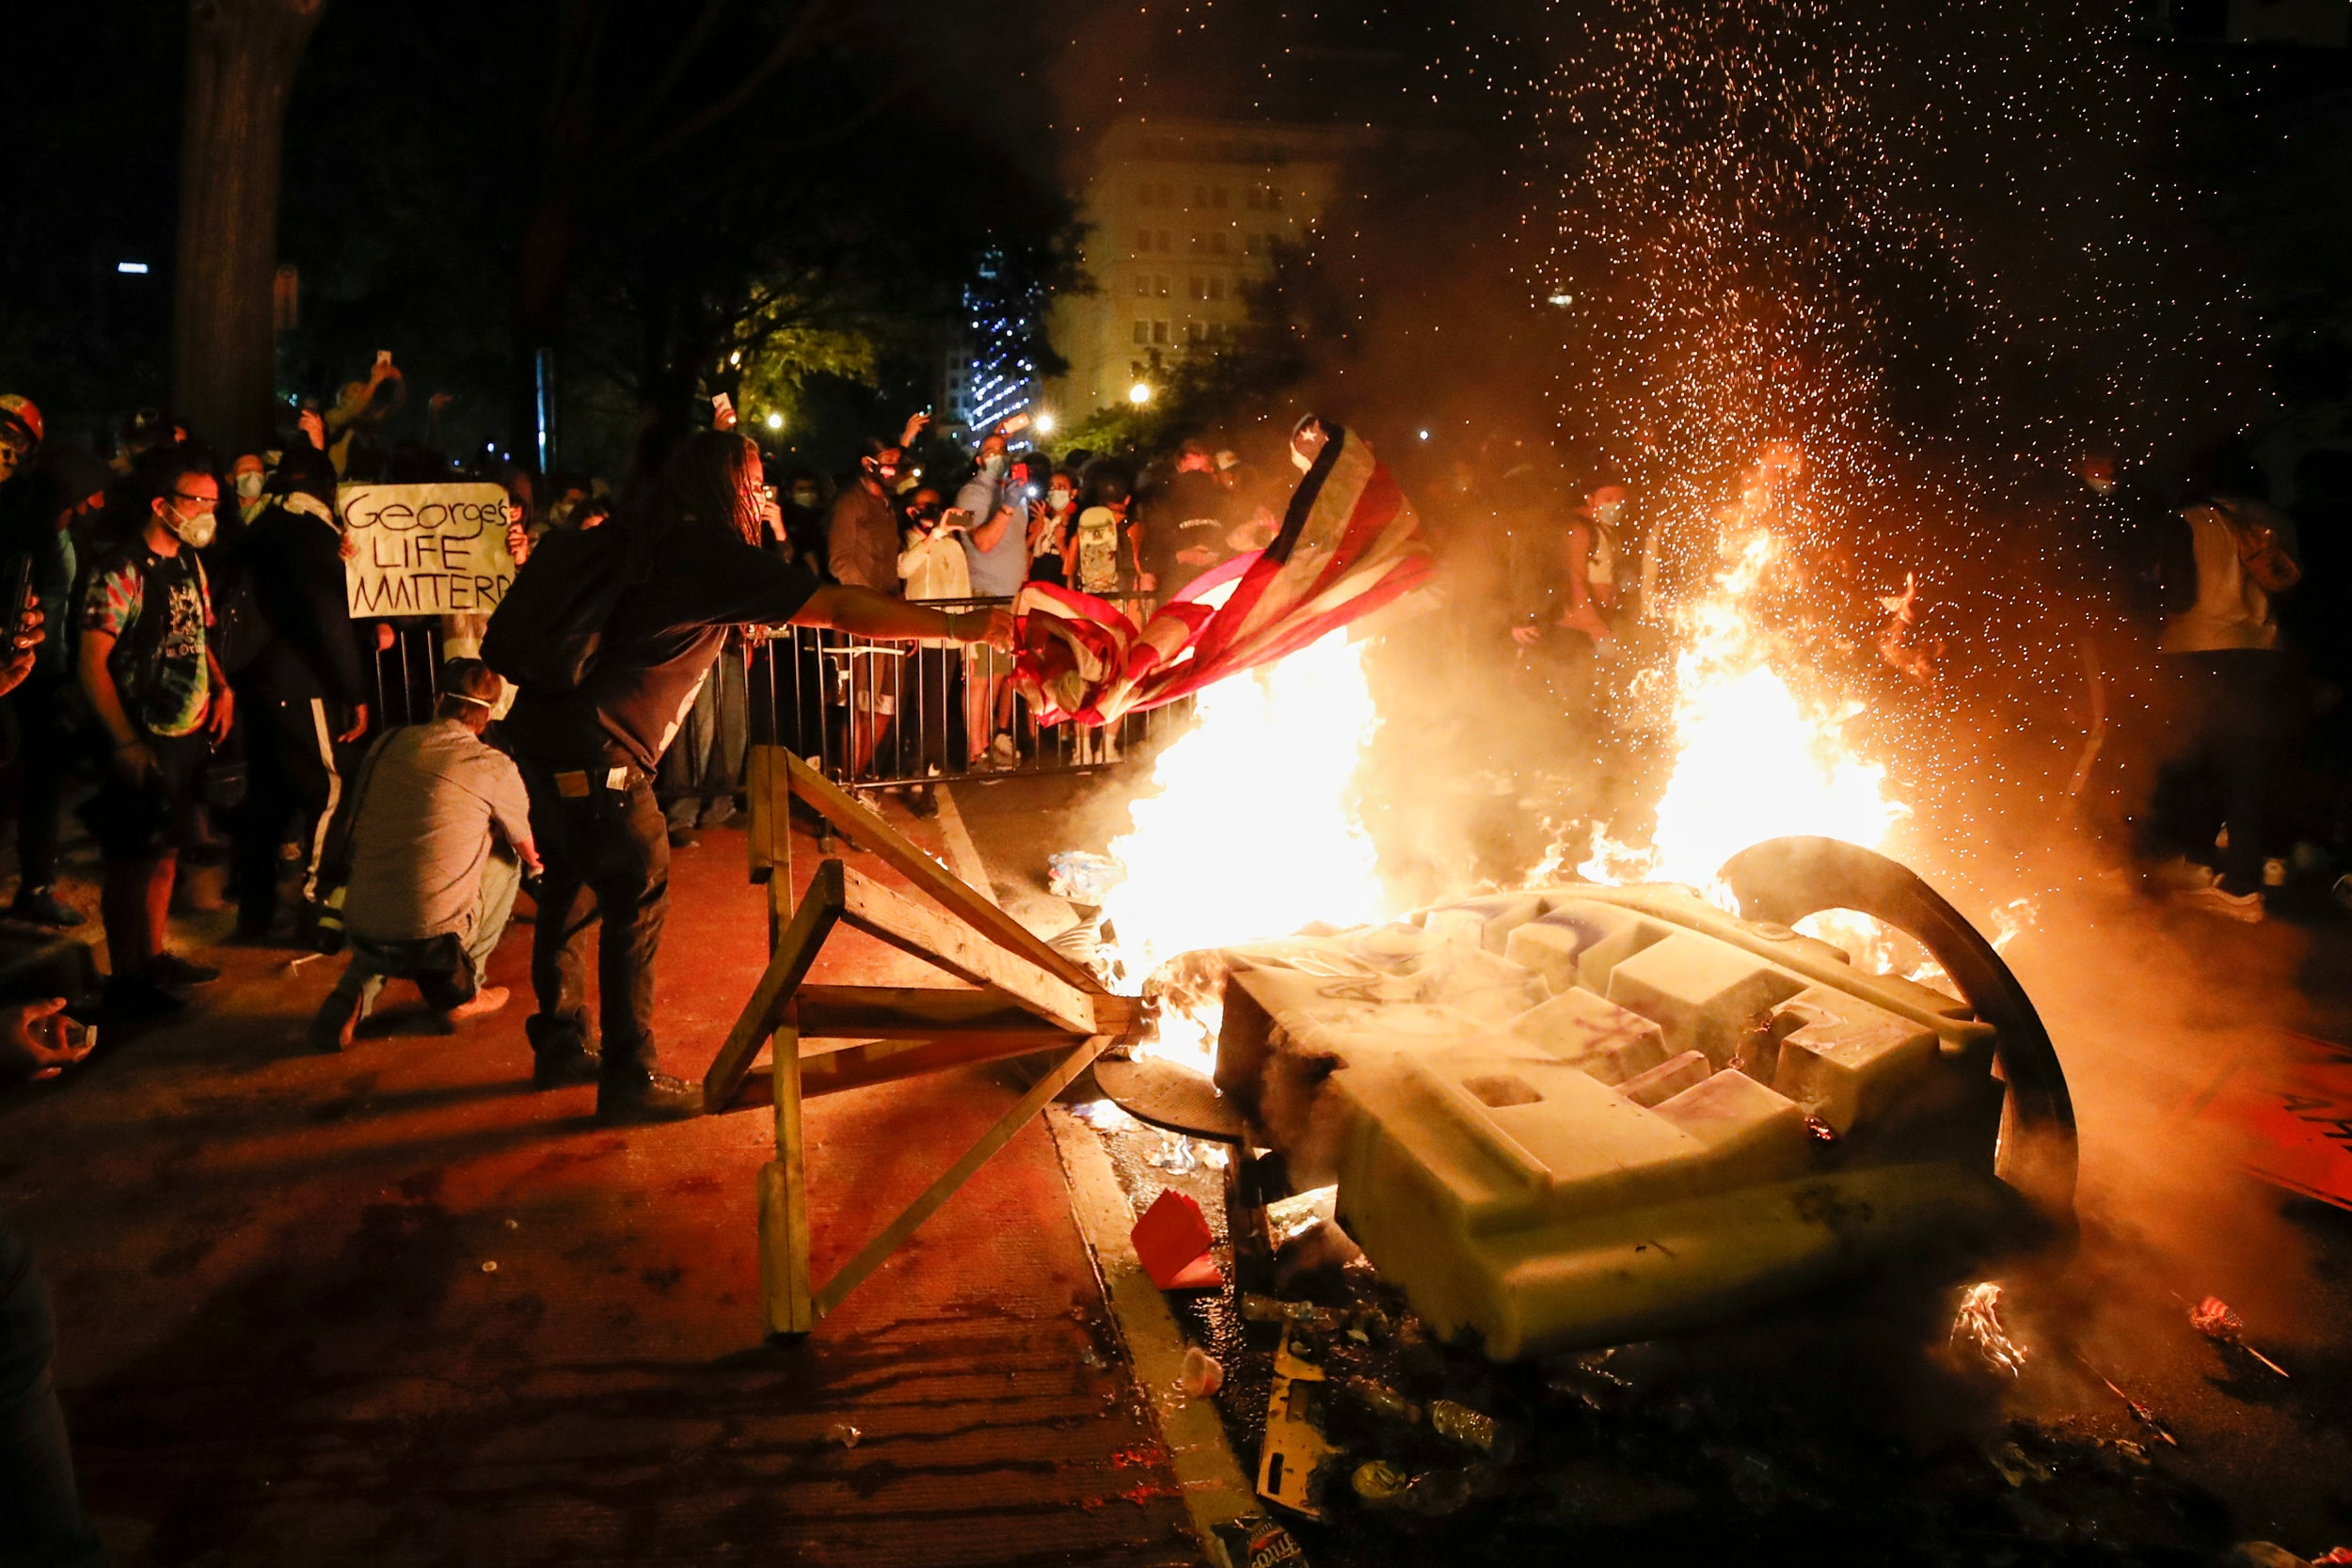 Fire burns during protest of police killing of George Floyd outside White House.